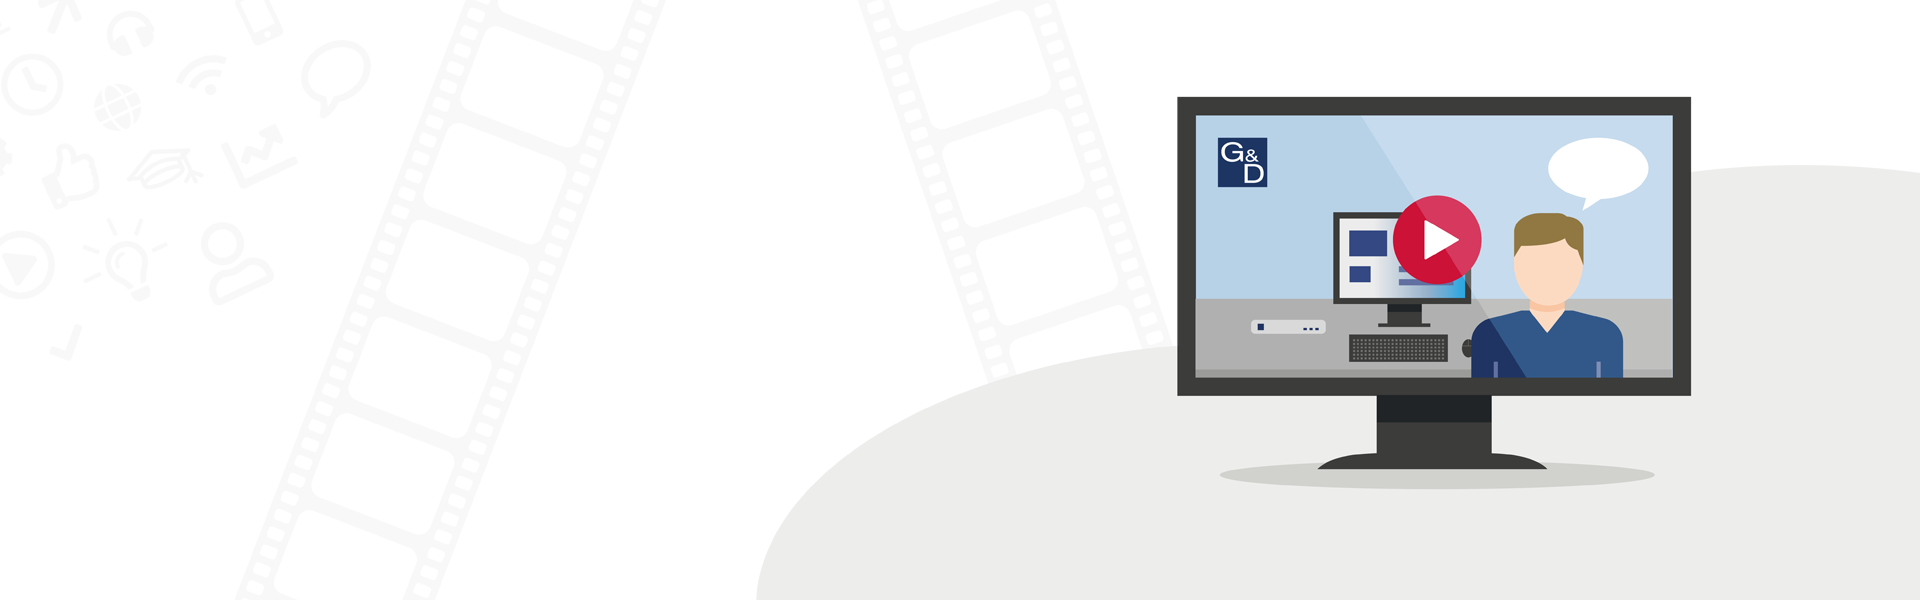 Video expertise at G&D: We can tell you a lot…